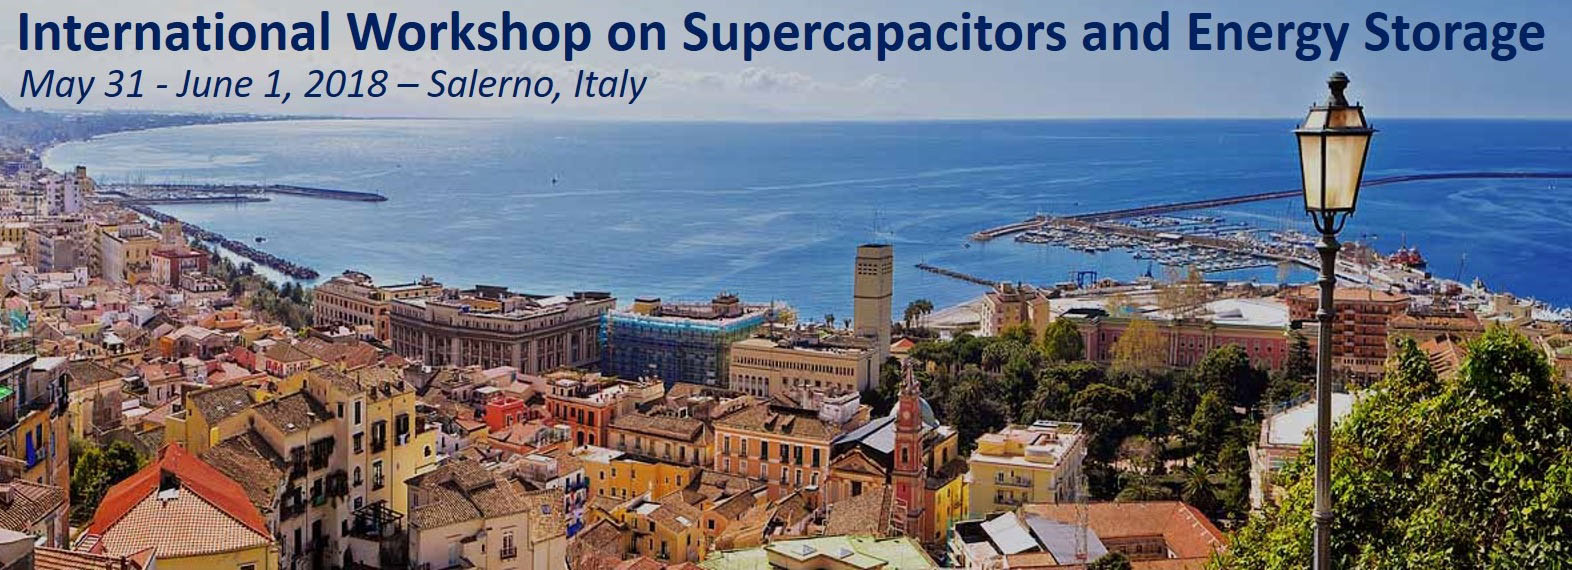 International Workshop on Supercapacitors and Energy Storage